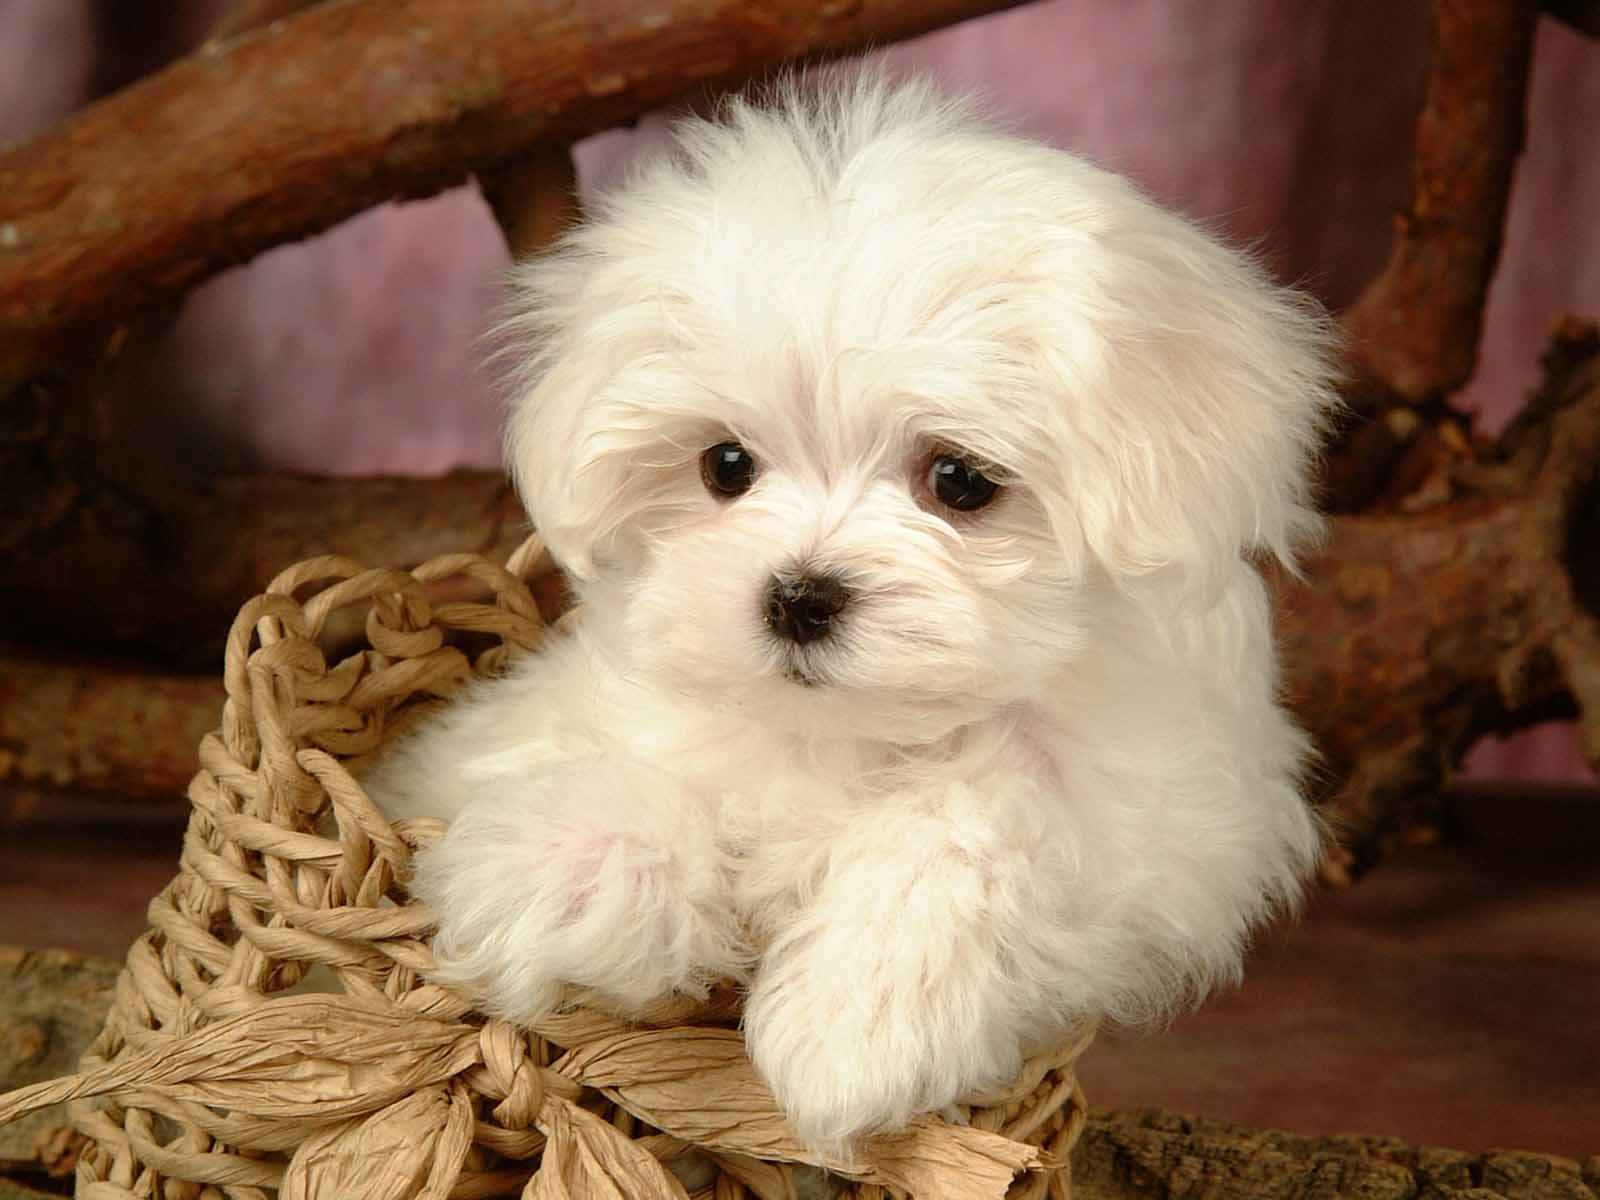 Sleeping Cute Puppy Wallpapers Pictures 1600x1200